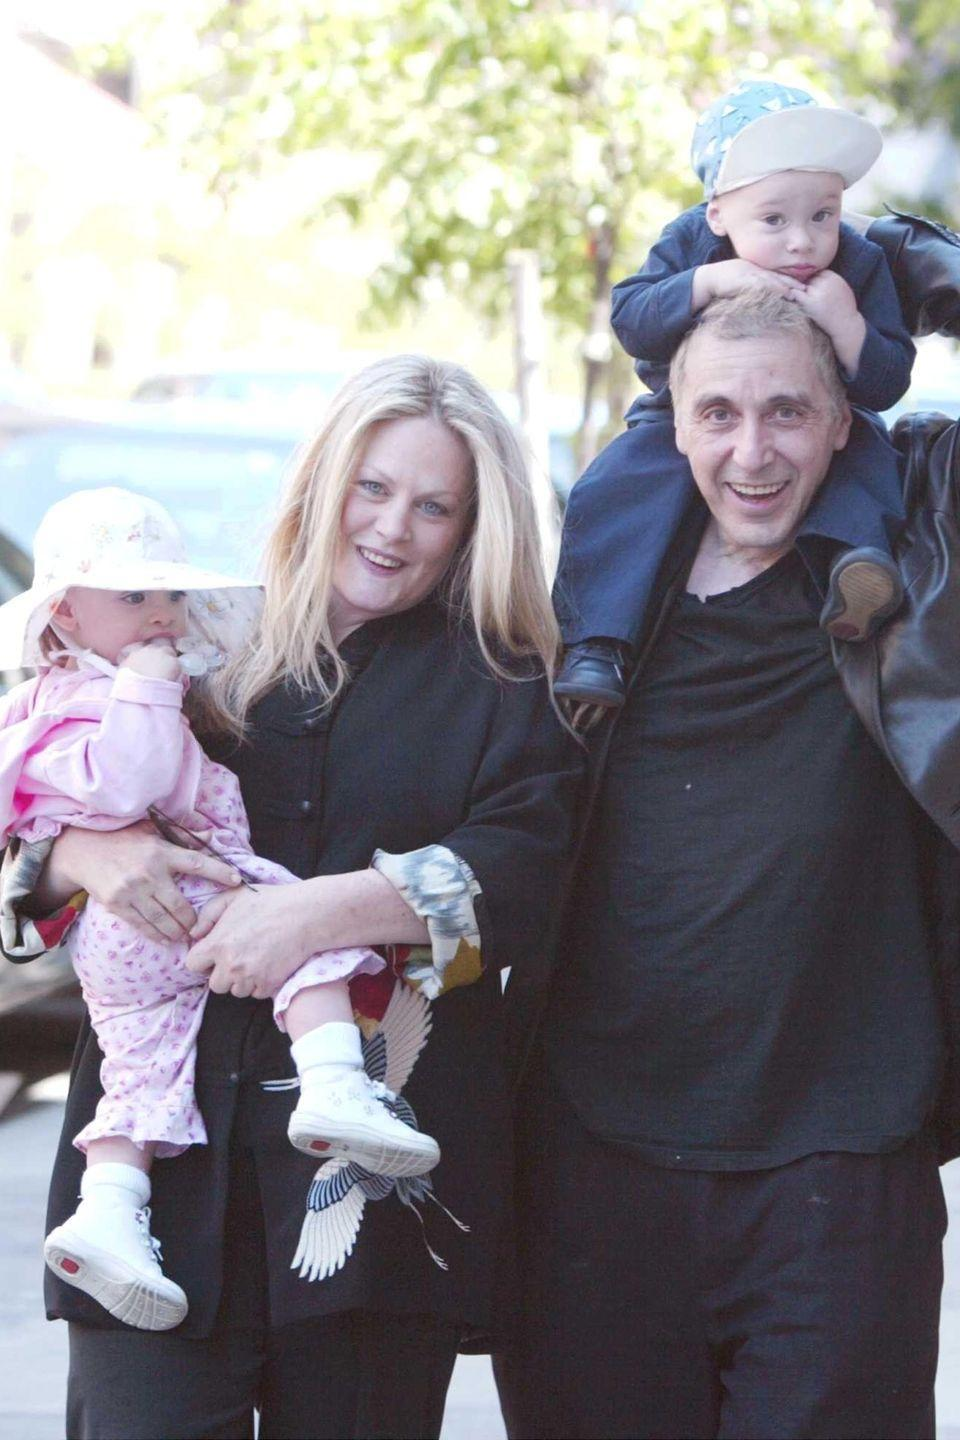 "<p>In 2001, Beverly D'Angelo gave birth to twins Anton and Olivia with husband Al Pacino. Though rapidly approaching 50, D'Angelo and Pacino say they were able to conceive using IVF. <a href=""http://people.com/archive/pacinos-bambinos-vol-55-no-6/"" rel=""nofollow noopener"" target=""_blank"" data-ylk=""slk:People"" class=""link rapid-noclick-resp""><em>People</em></a> reported that D'Angelo was nervous because of her age and was very uncomfortable at the end of her pregnancy, but ultimately gave birth to two healthy babies. </p>"